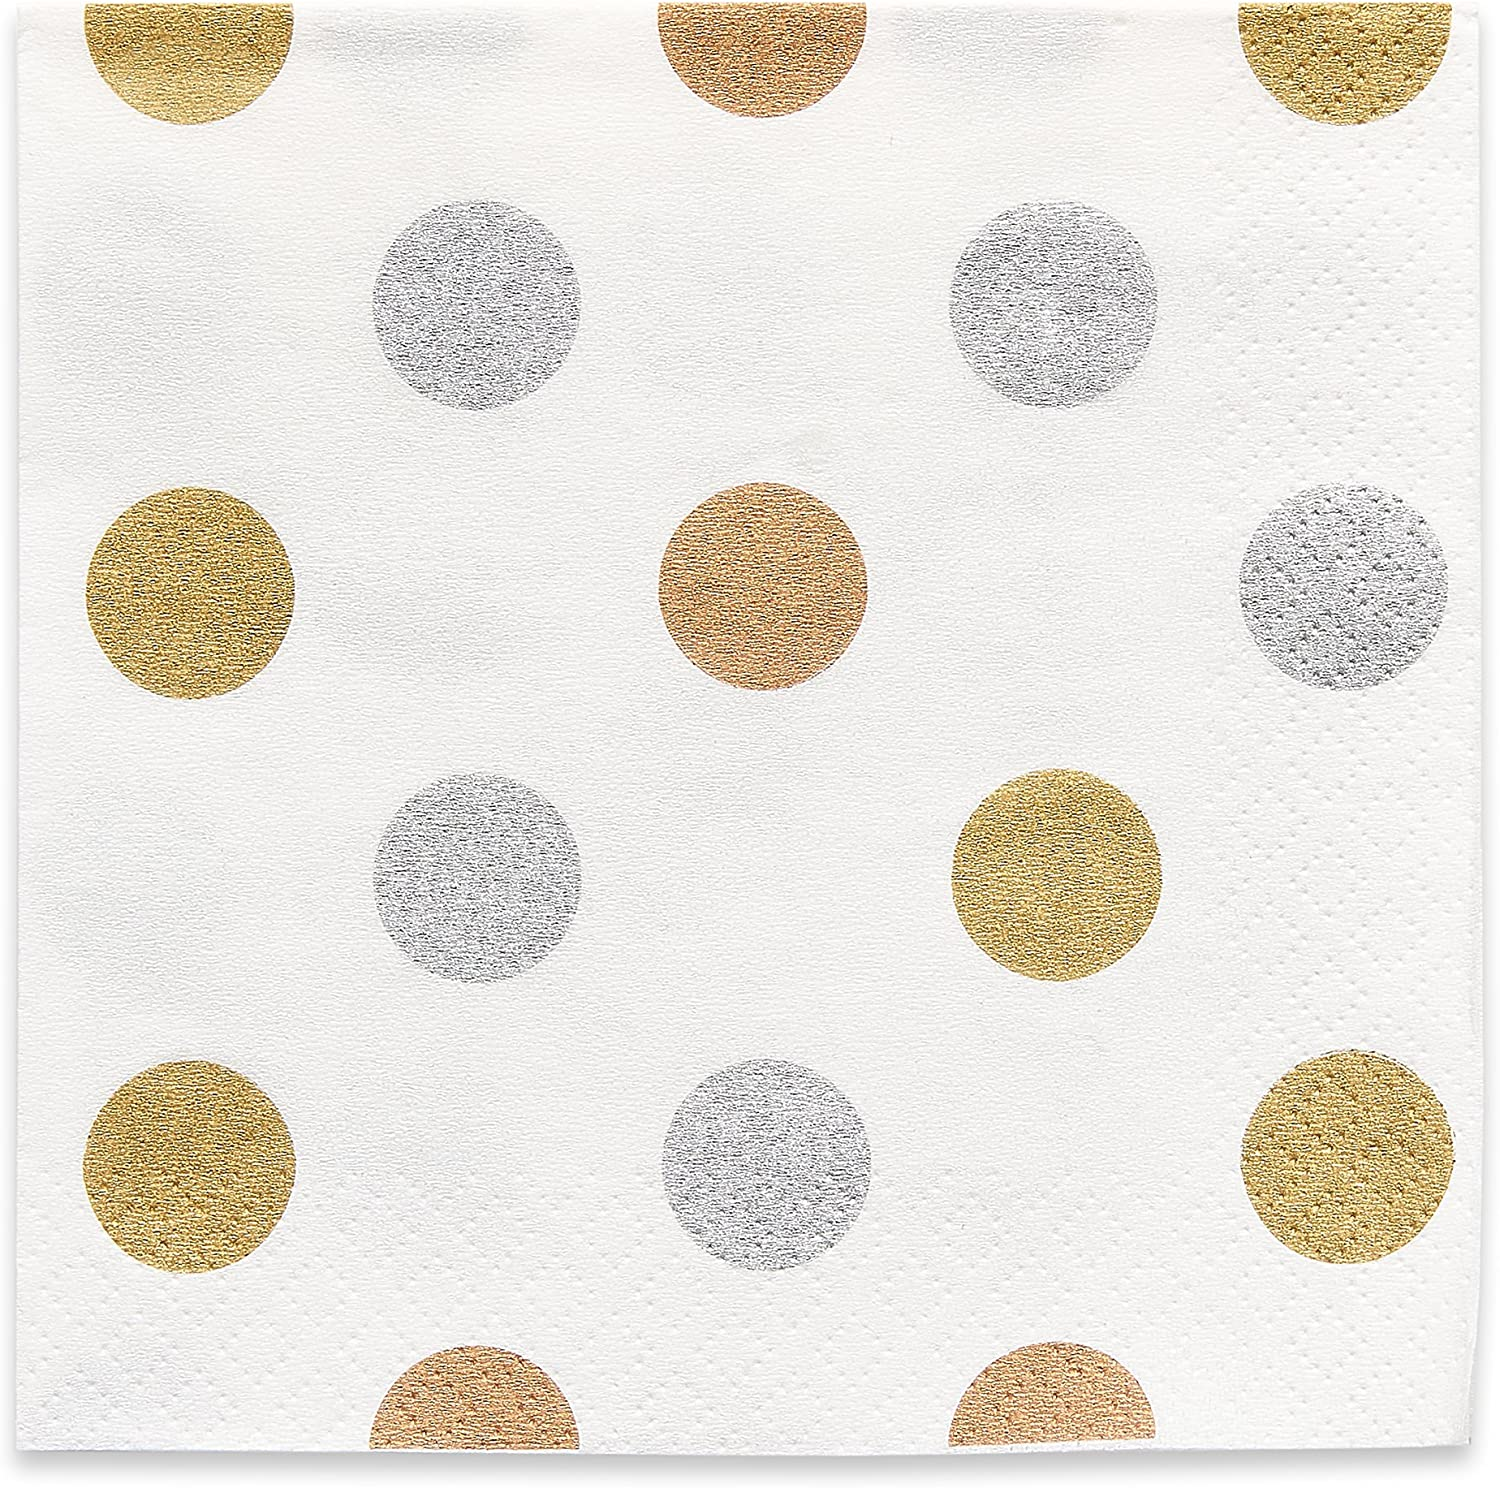 American Greetings Metallic Dots Party Supplies, Beverage Napkins (16-Count)